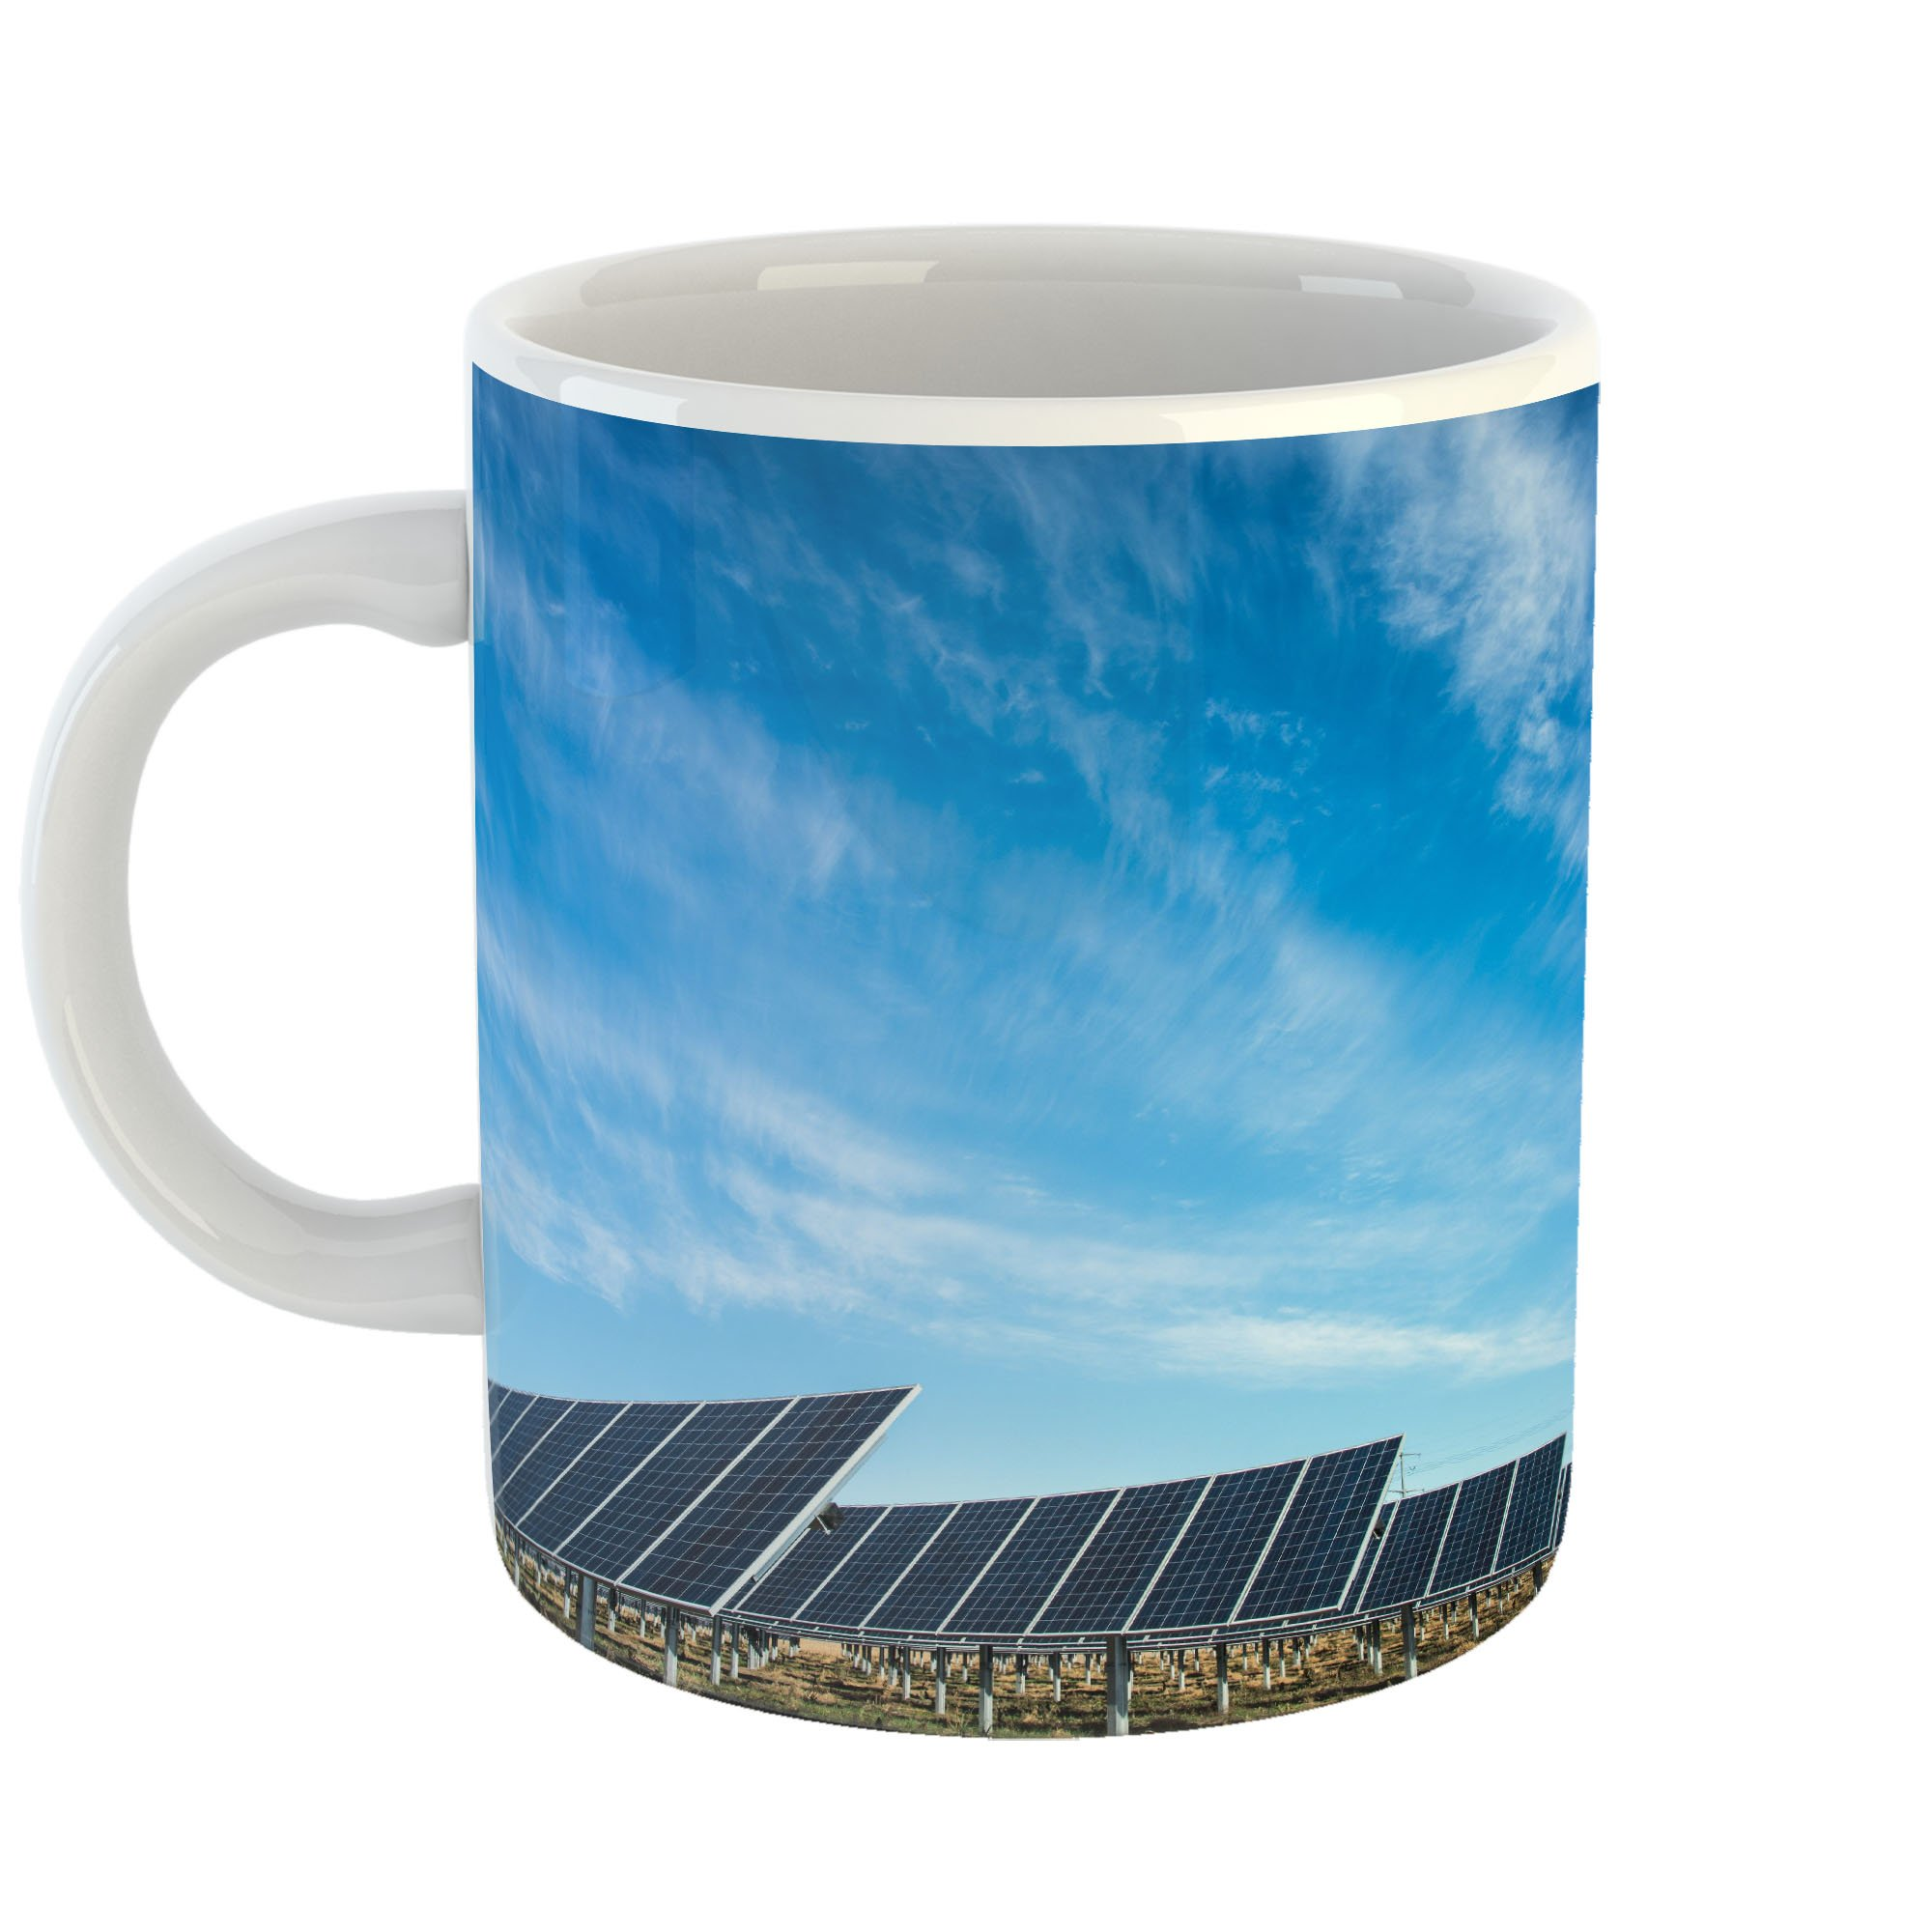 Westlake Art - Panel Solar - 11oz Coffee Cup Mug - Modern Picture Photography Artwork Home Office Birthday Gift - 11 Ounce (36CE-FBA24)